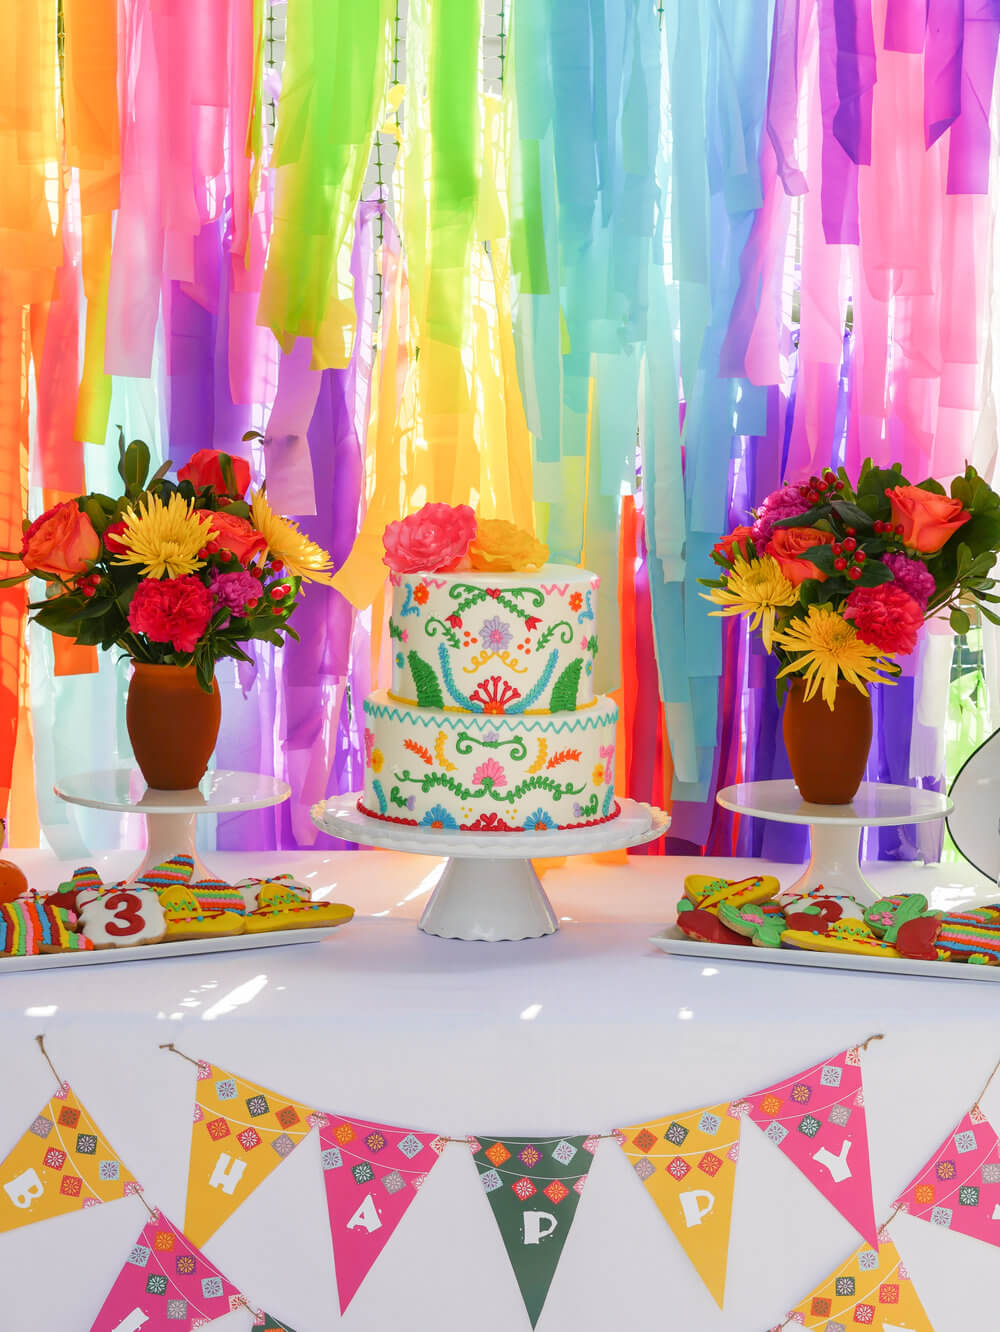 A Happy Birthday banner, Mexican fiesta cake, sombrero, cactus, pinata, and chili pepper cookies, along with fresh flowers and fun streamer backdrop is the way to party!